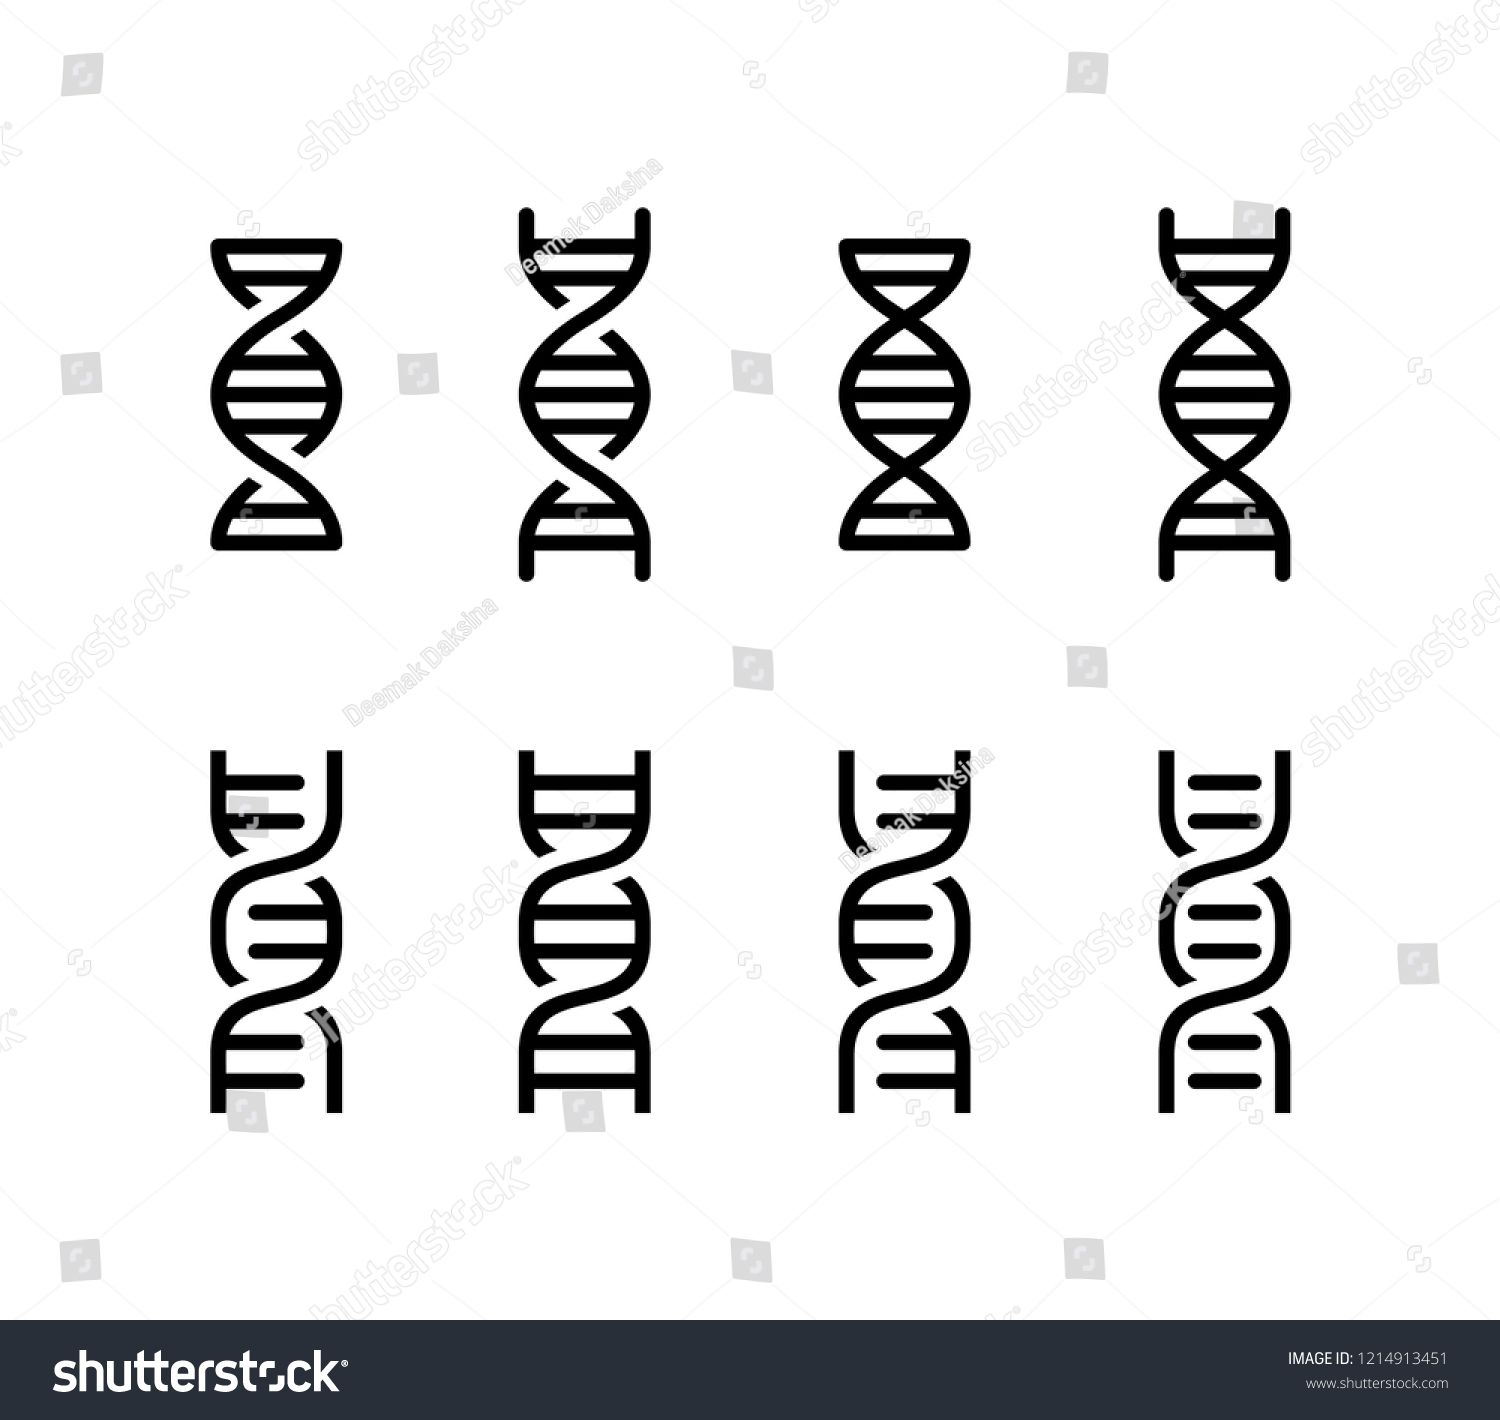 Chromosome Set Dna Icon Design Dna Genetic Helix Gene Structure Chromosome